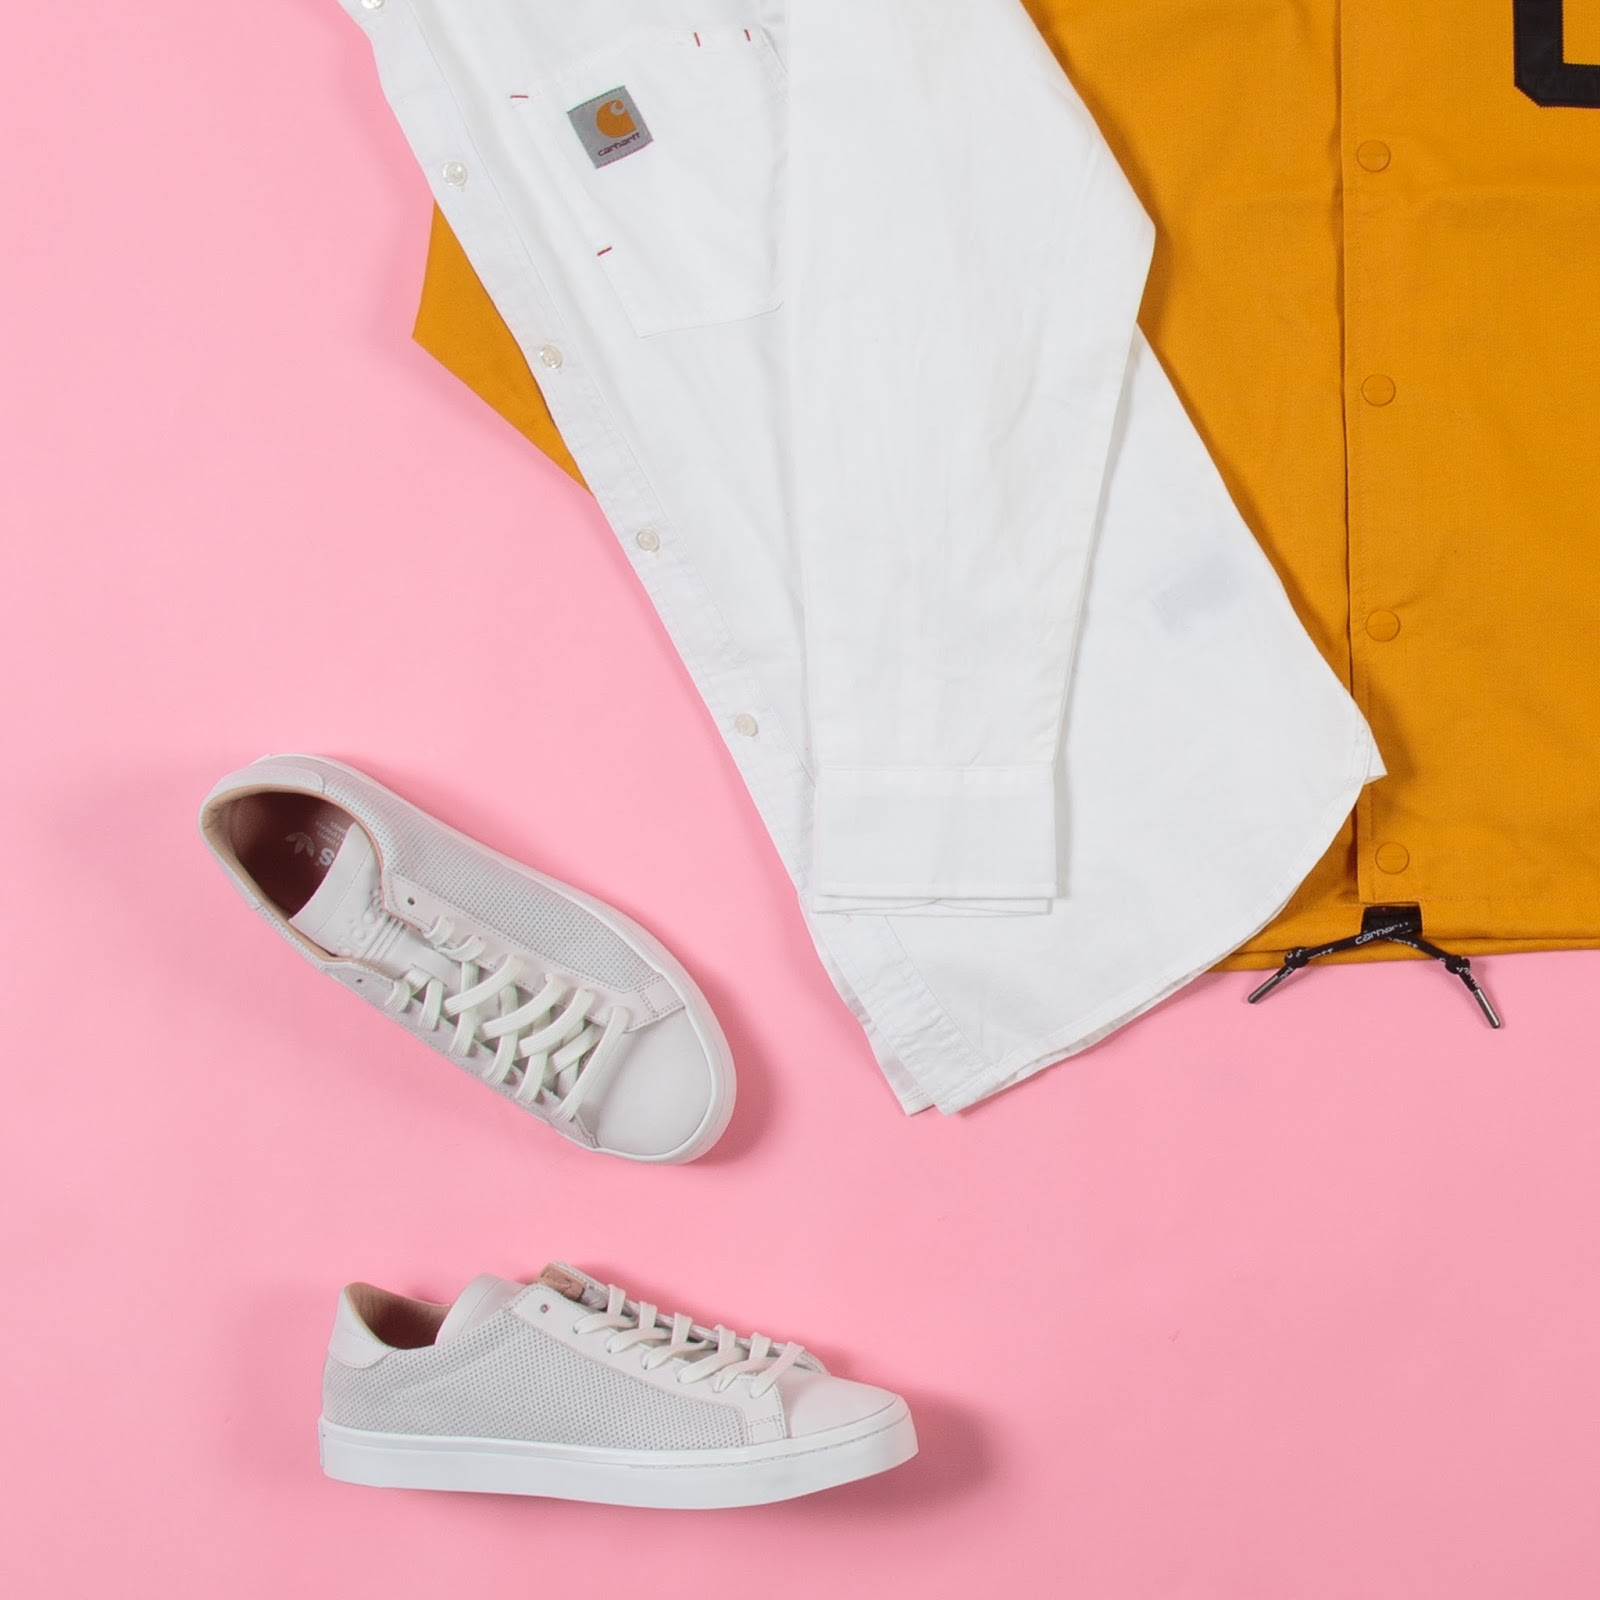 1eff8ff44f8 This week s look is a clean and preppy look filled with reworked workwear  silhouettes from Carhartt WIP.